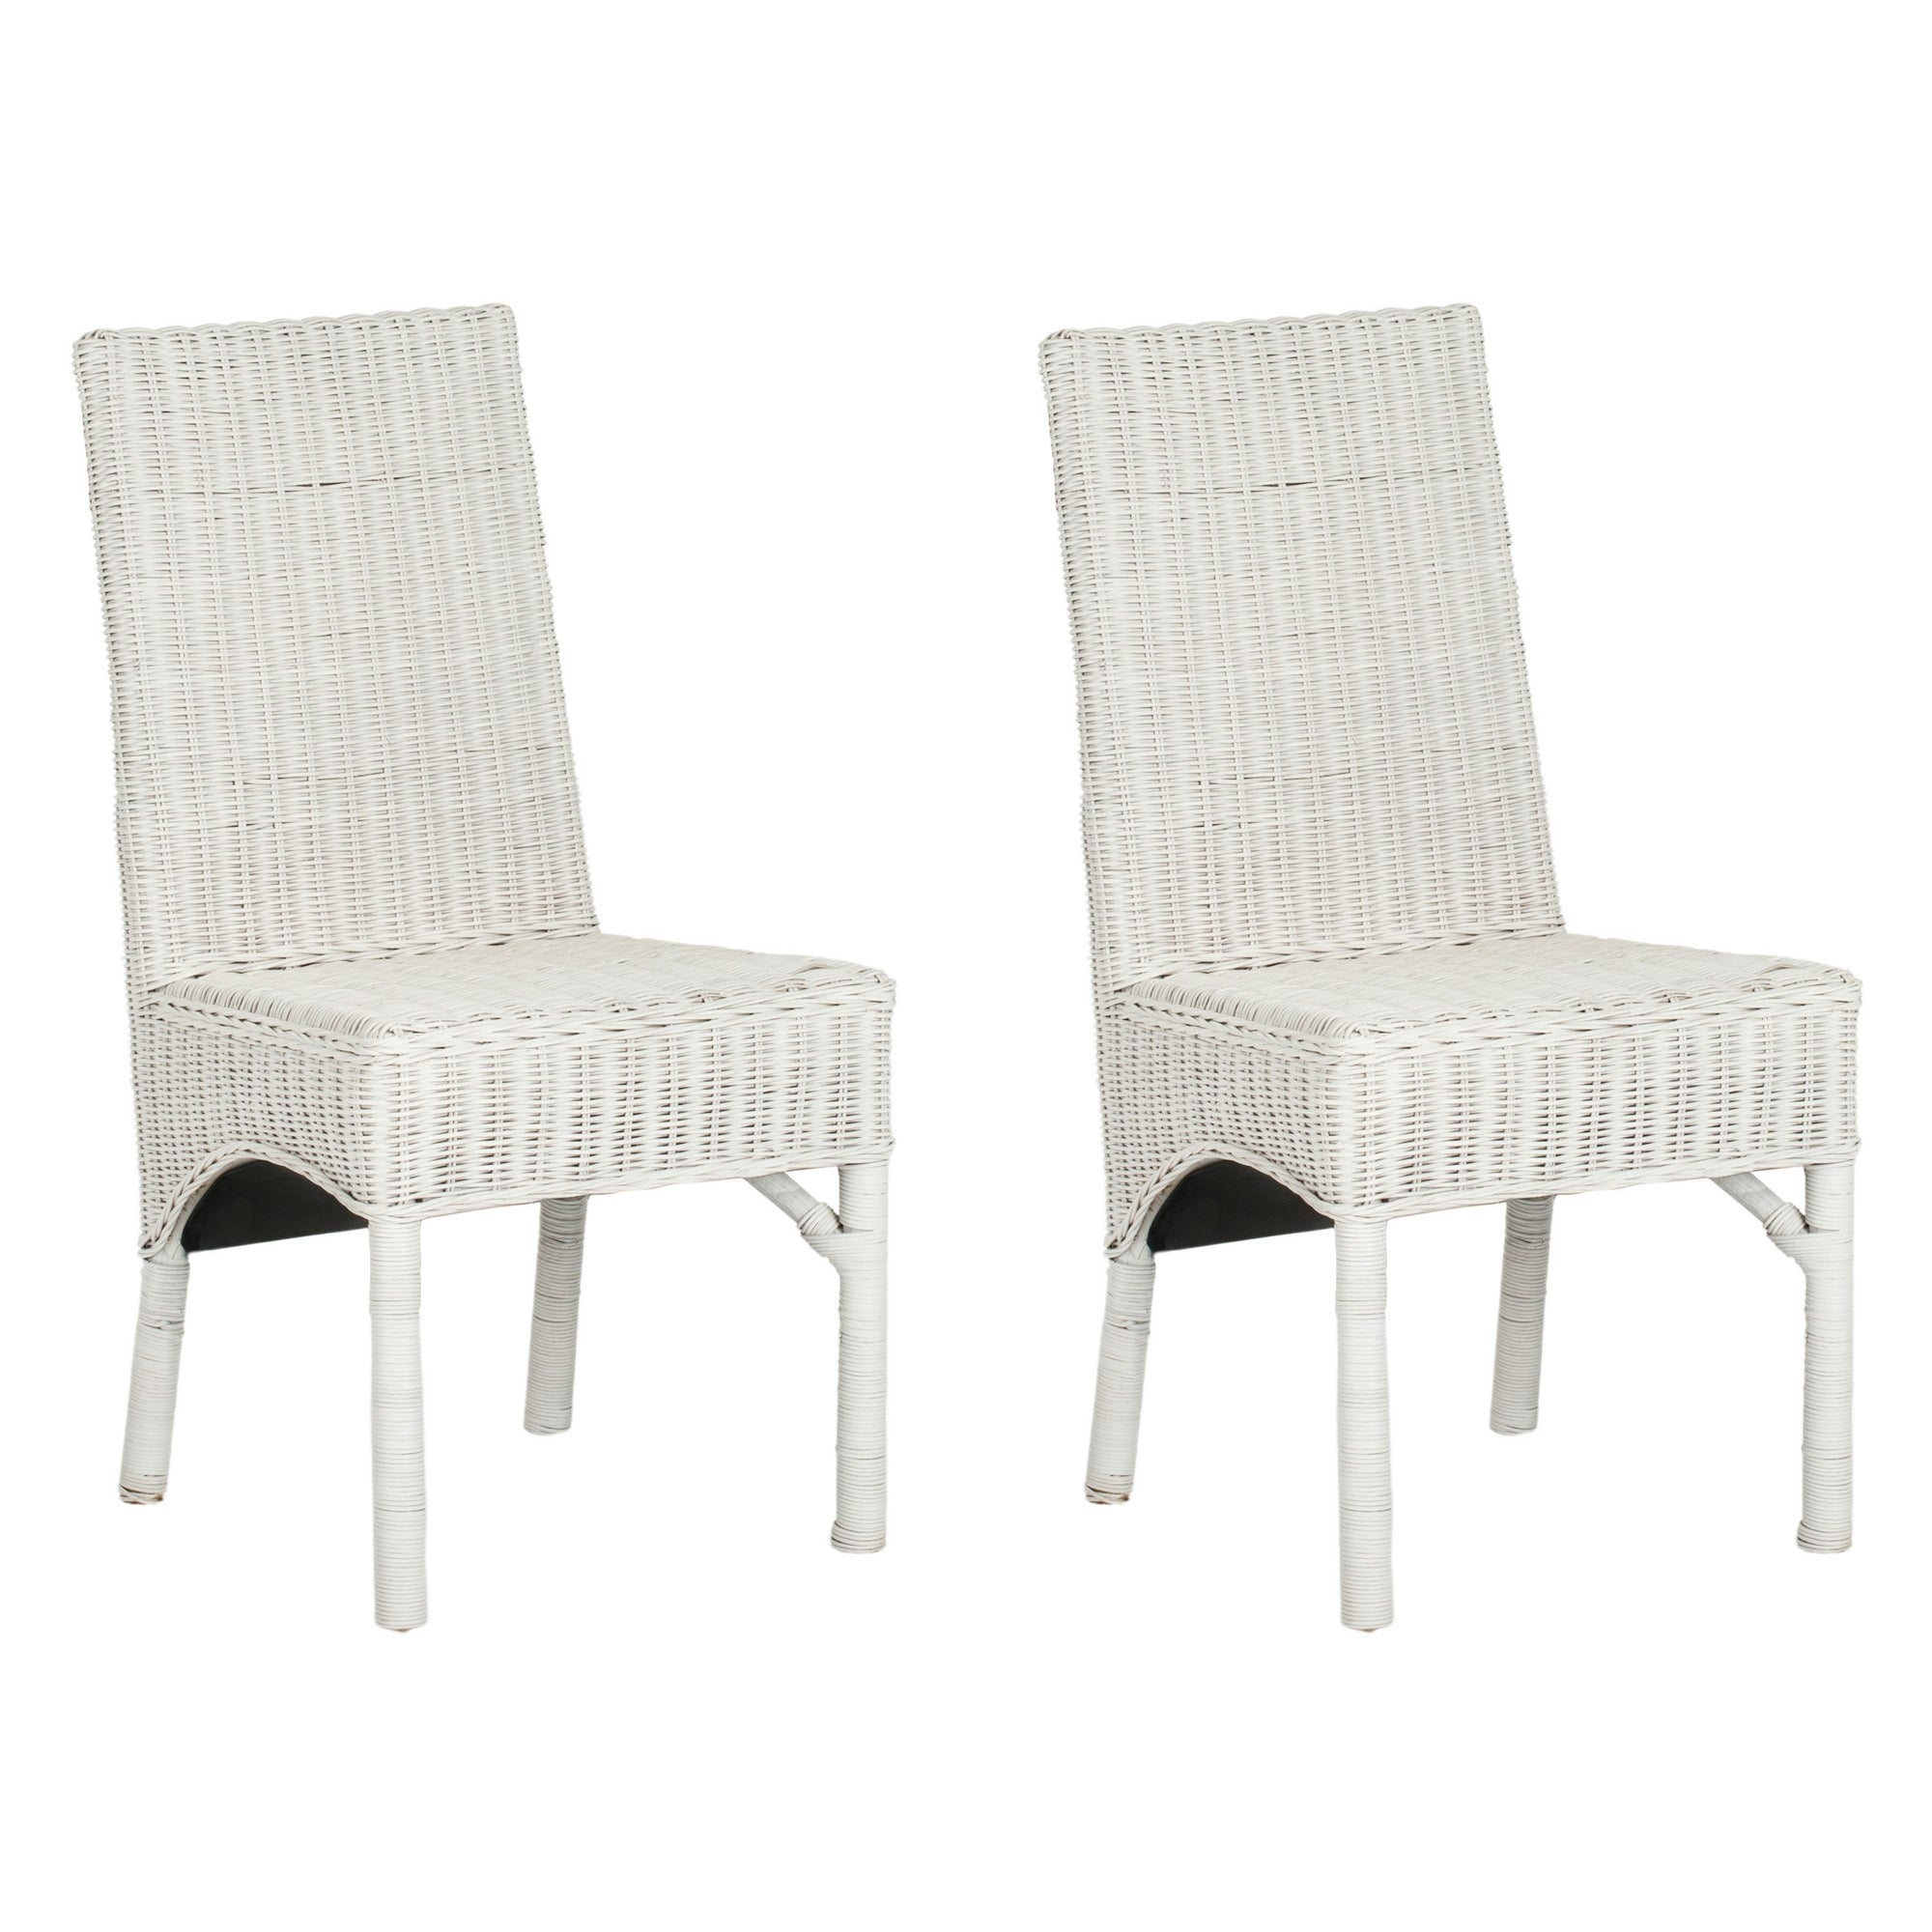 Shop safavieh rural woven dining sommerset white kubu wicker dining chairs set of 2 free shipping today overstock com 7634035